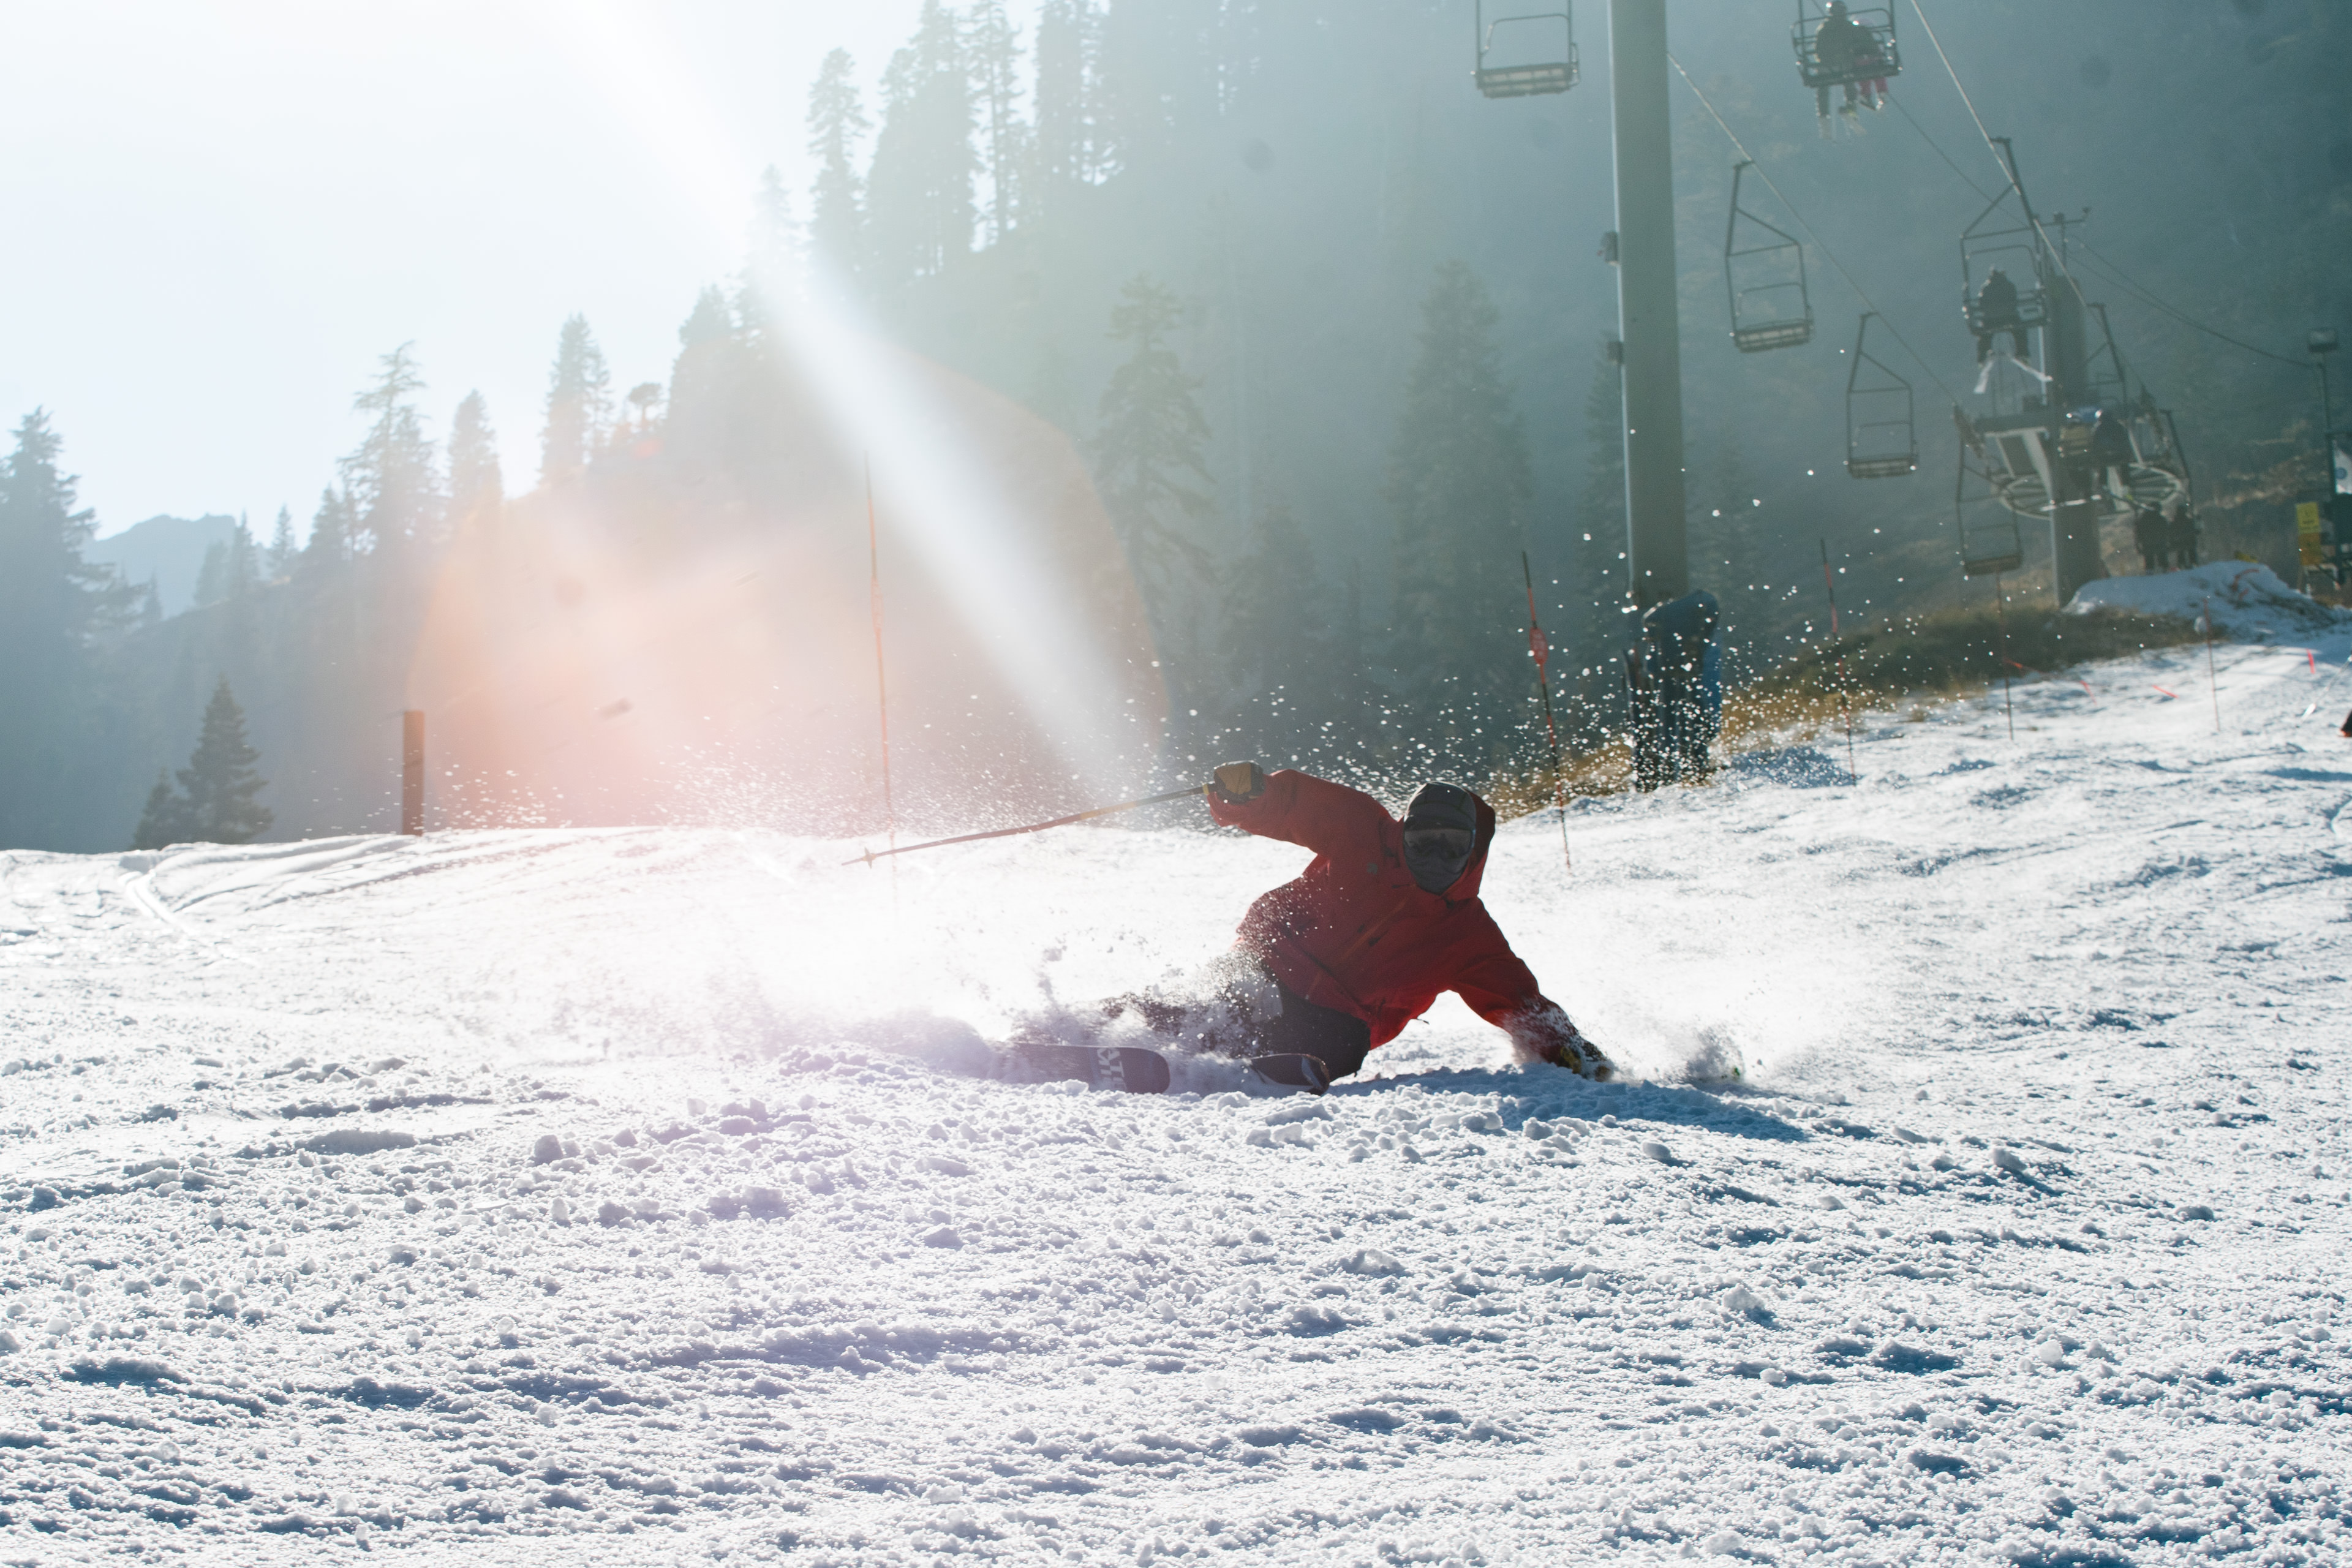 brandon craddock skiing a turn on the groomers at Alpine meadows